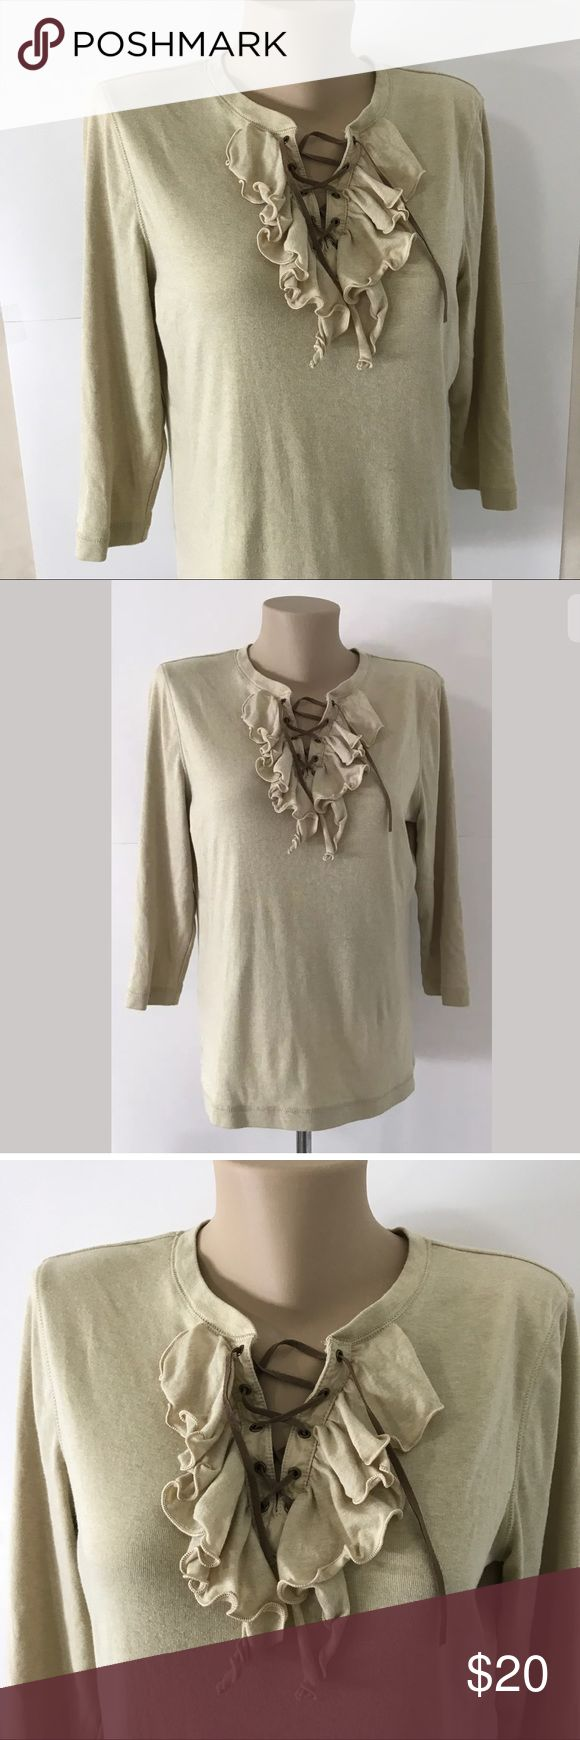 "Lauren Ralph Peasant Blouse XL Ruffle 3/4 Sleeve Up for sale is a Lauren Ralph Lauren Peasant Blouse Womens XL Beige Ruffle Top Shirt 3/4 Sleeve Gently used, no flaws or stains.  Armpit to armpit: 22"" Total length: 25"" Will ship quickly and carefully! Lauren Ralph Lauren Tops Blouses"